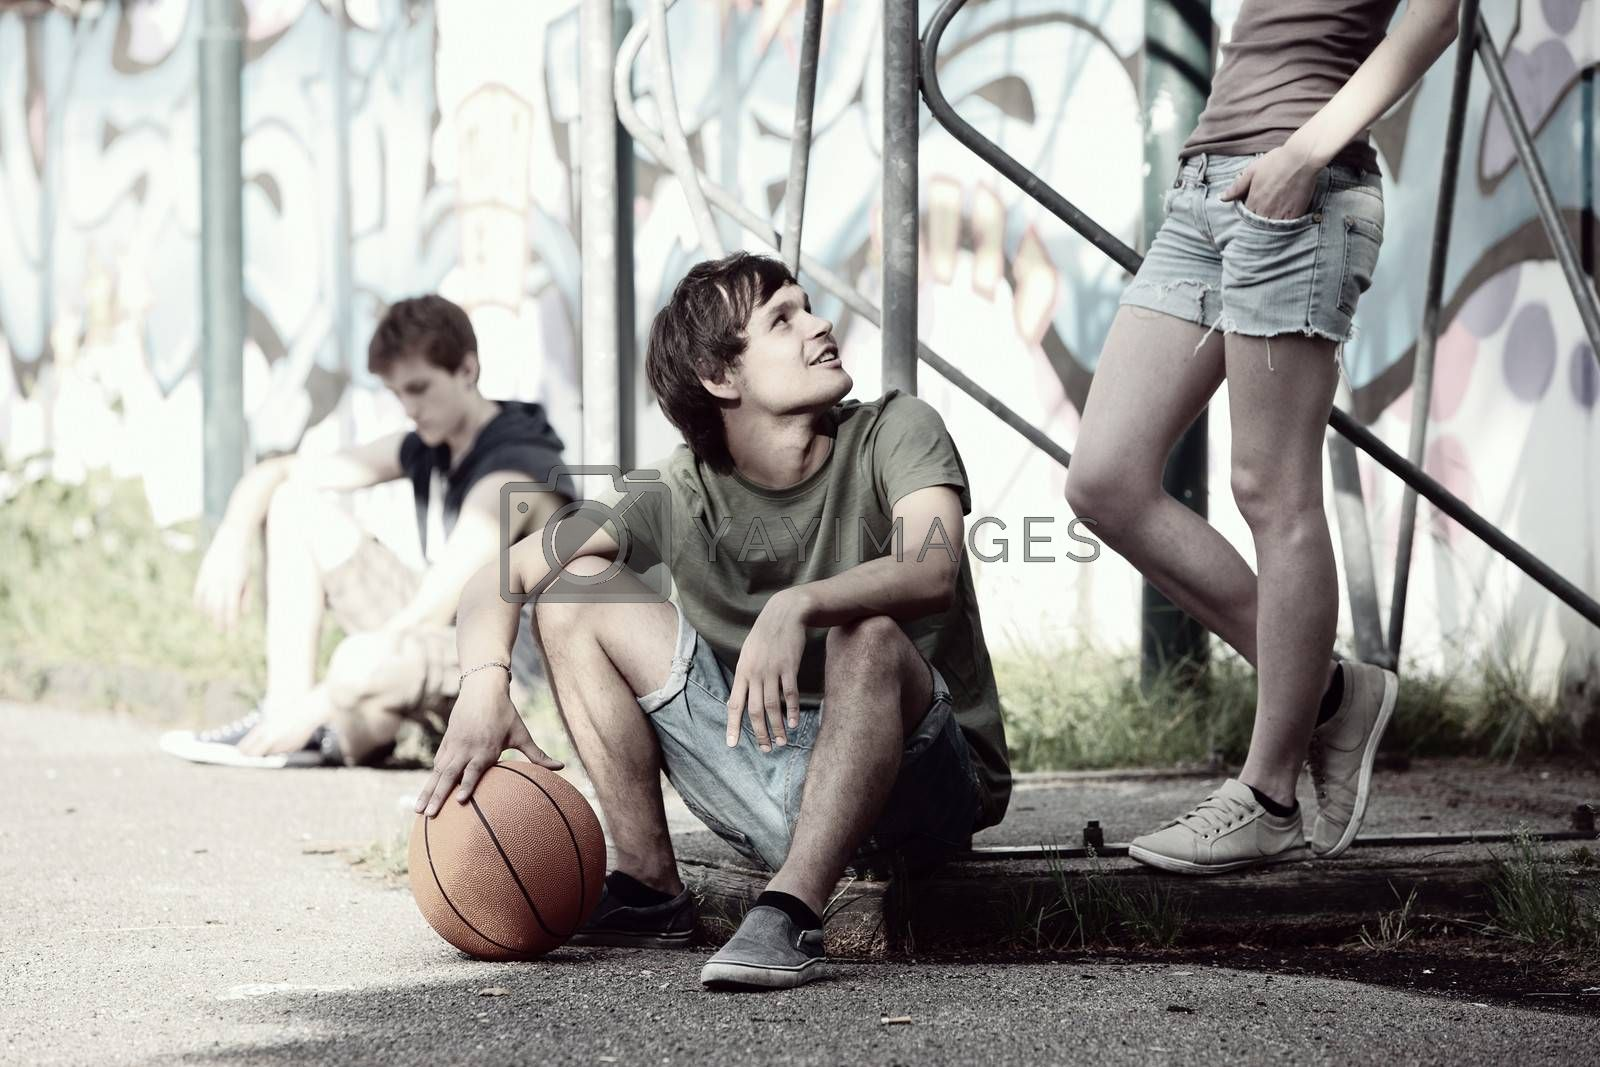 Group of friends taking a break after playing basketball